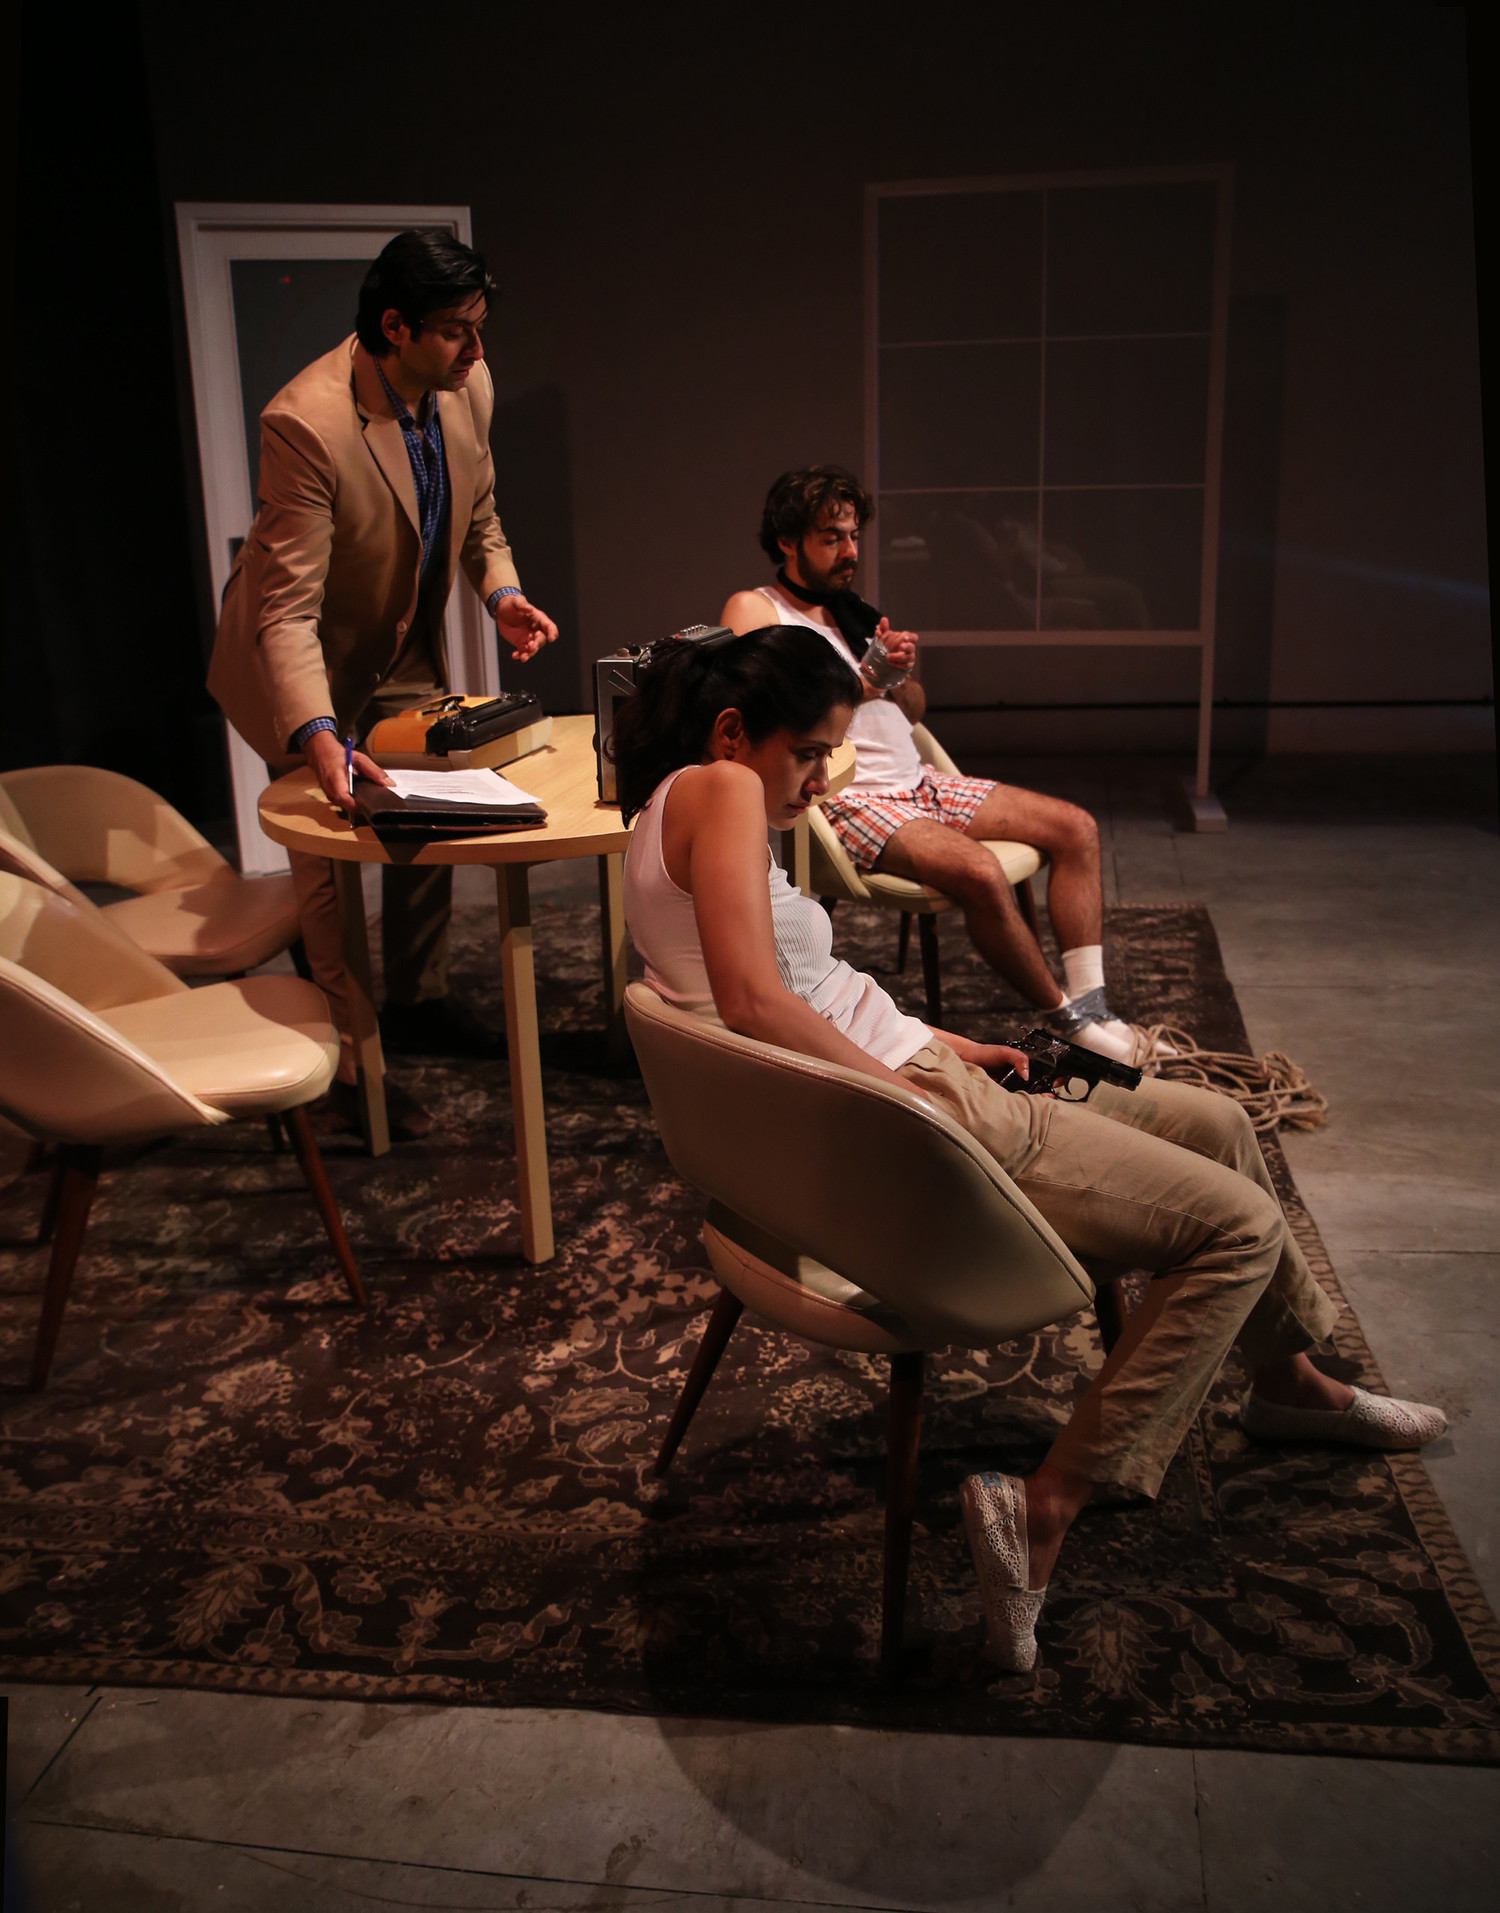 BWW Review: Vidushi Mehra Makes Her Directorial Debut With Death And The Maiden